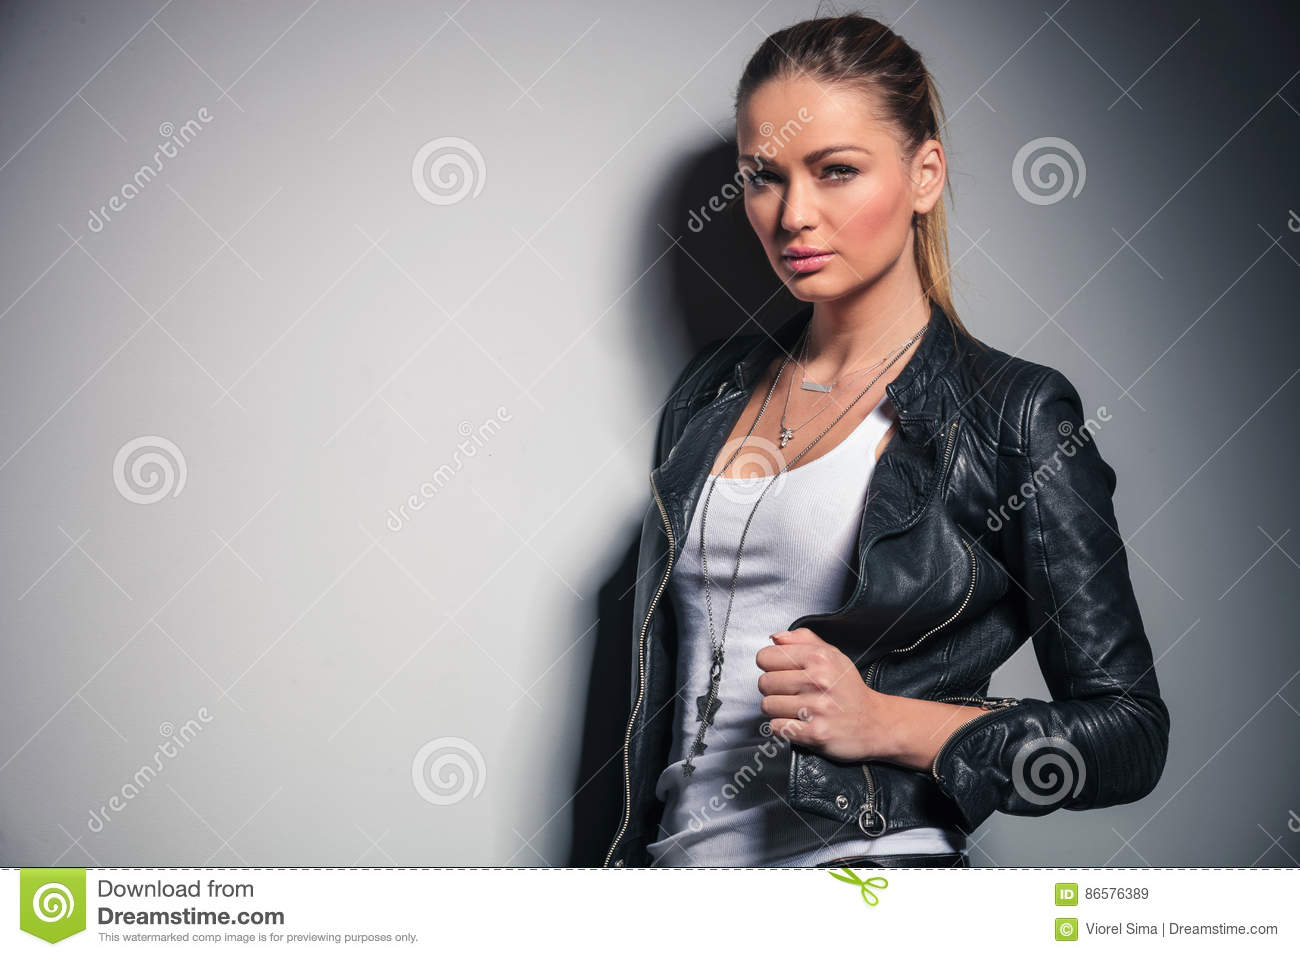 Cute blonde woman in leather jacket holds her collar